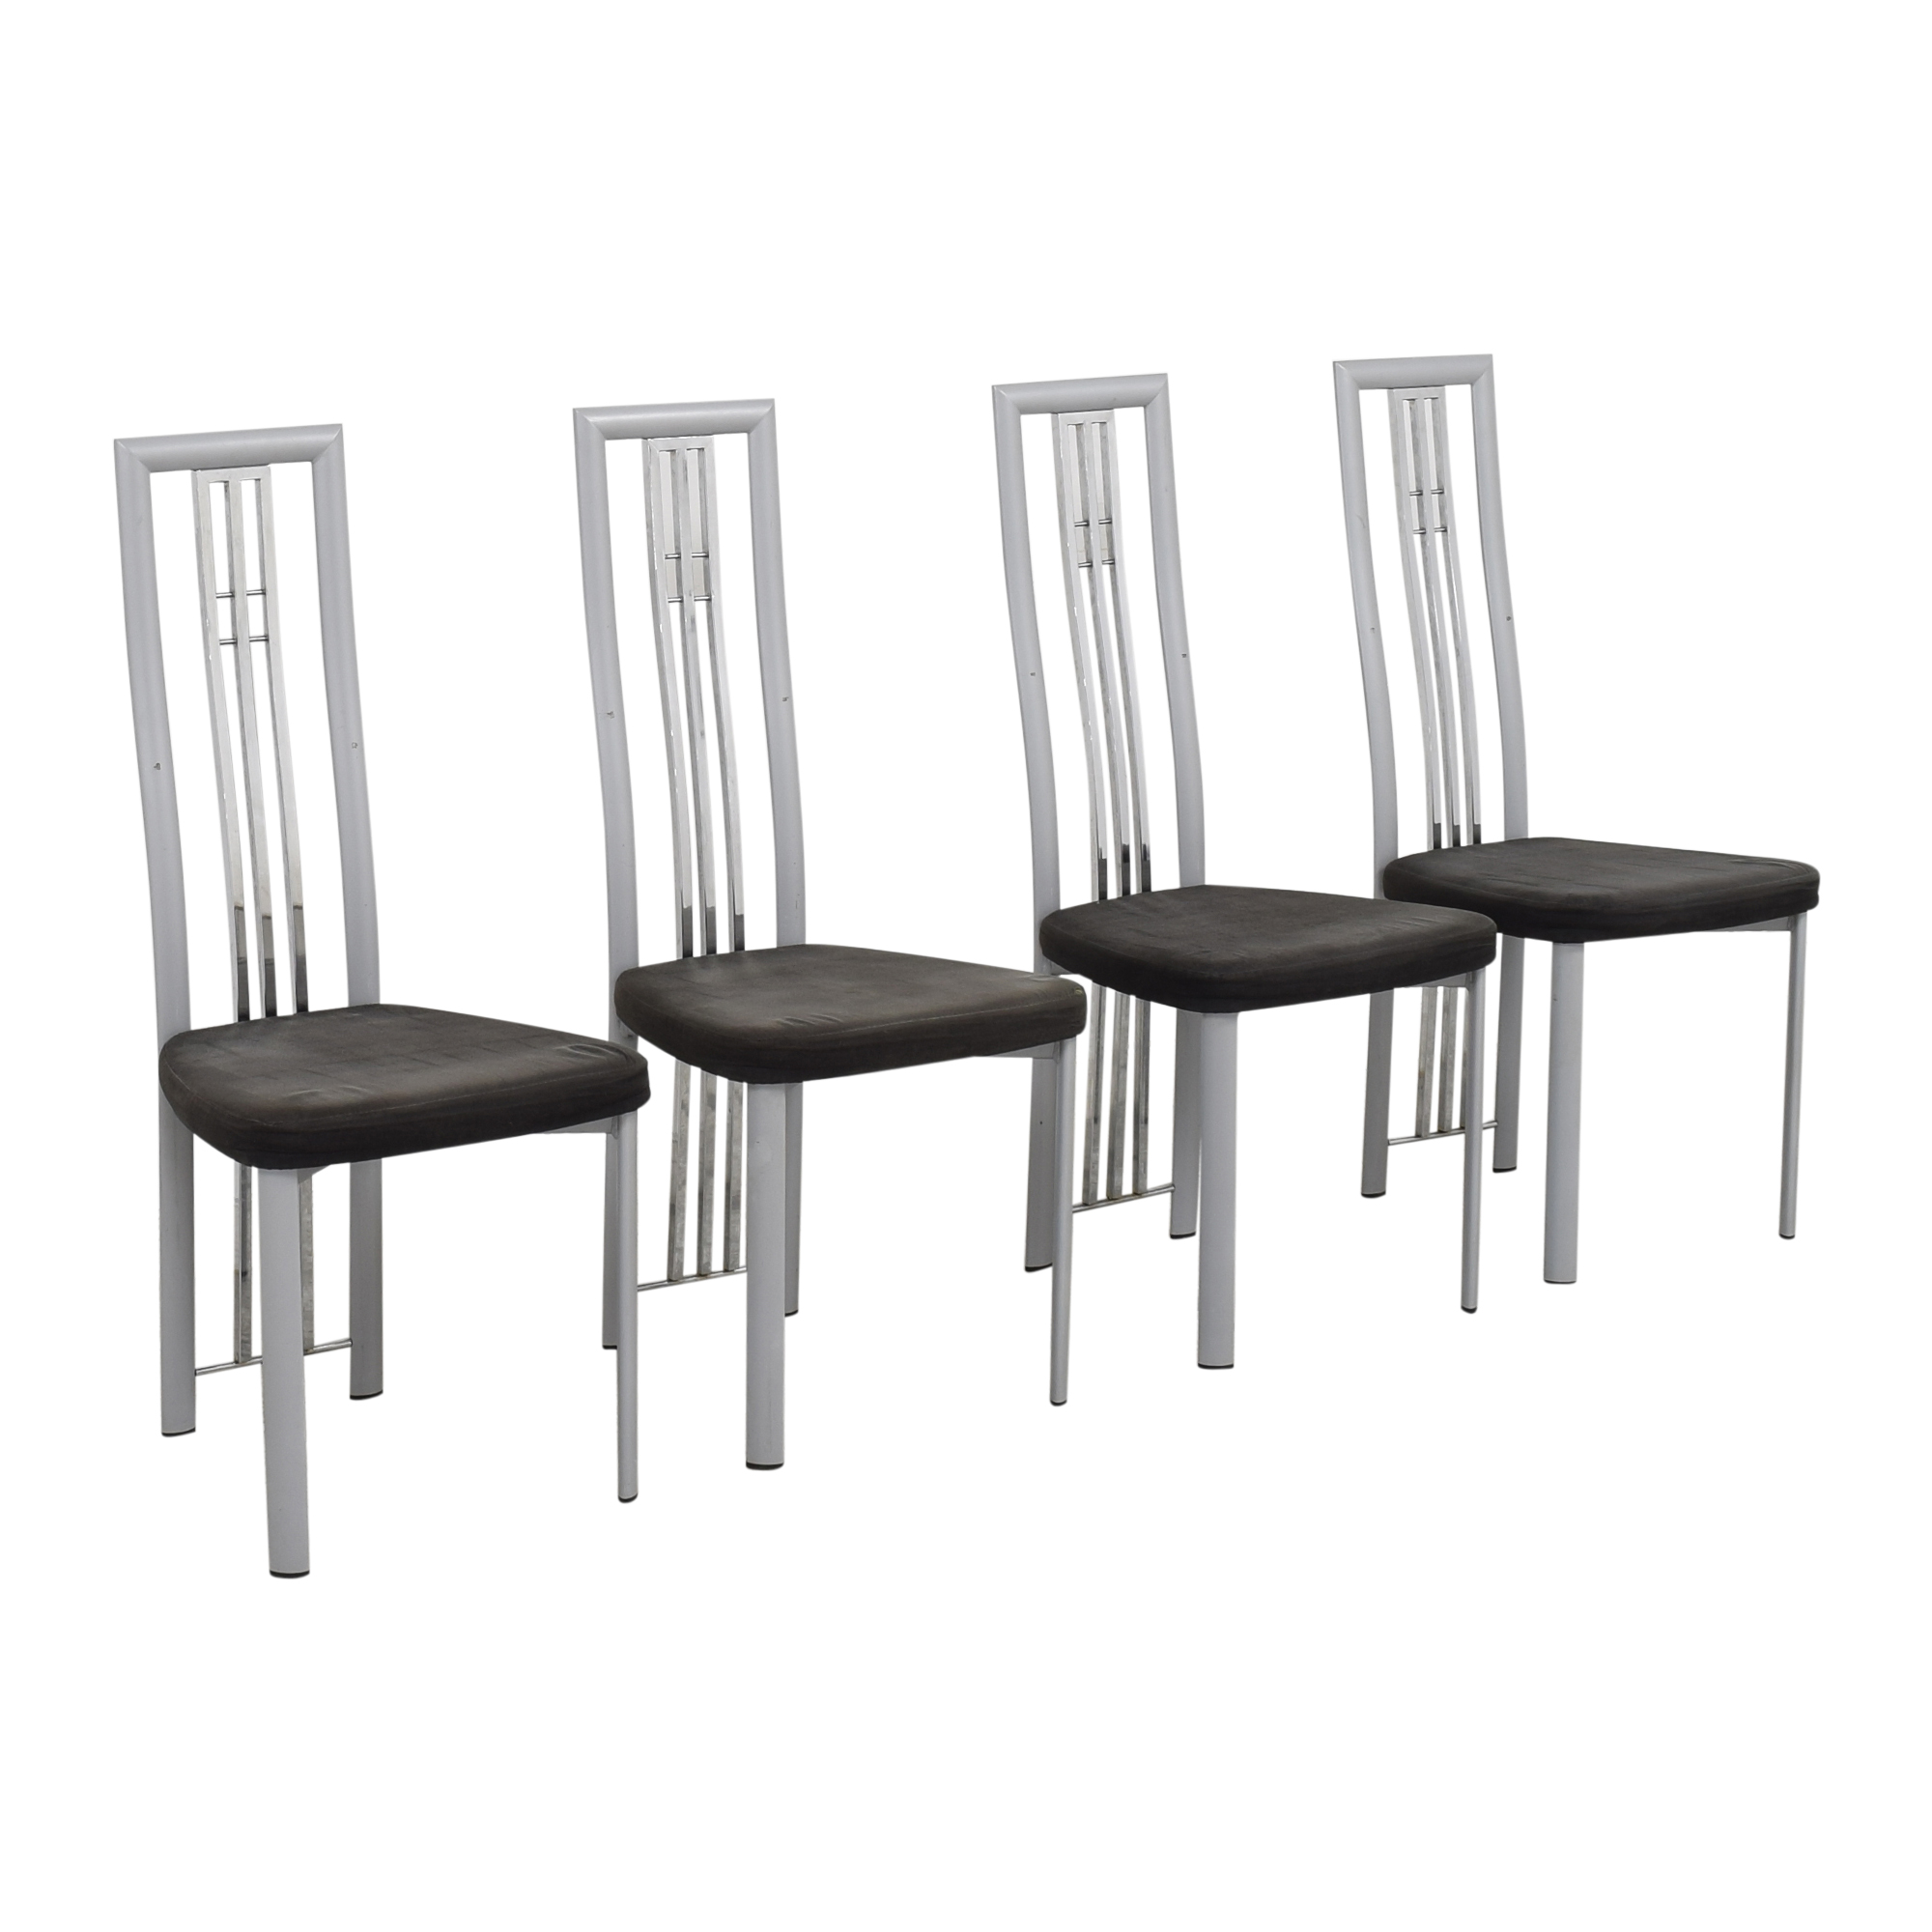 Effezeta Effezeta High Back Dining Chairs discount